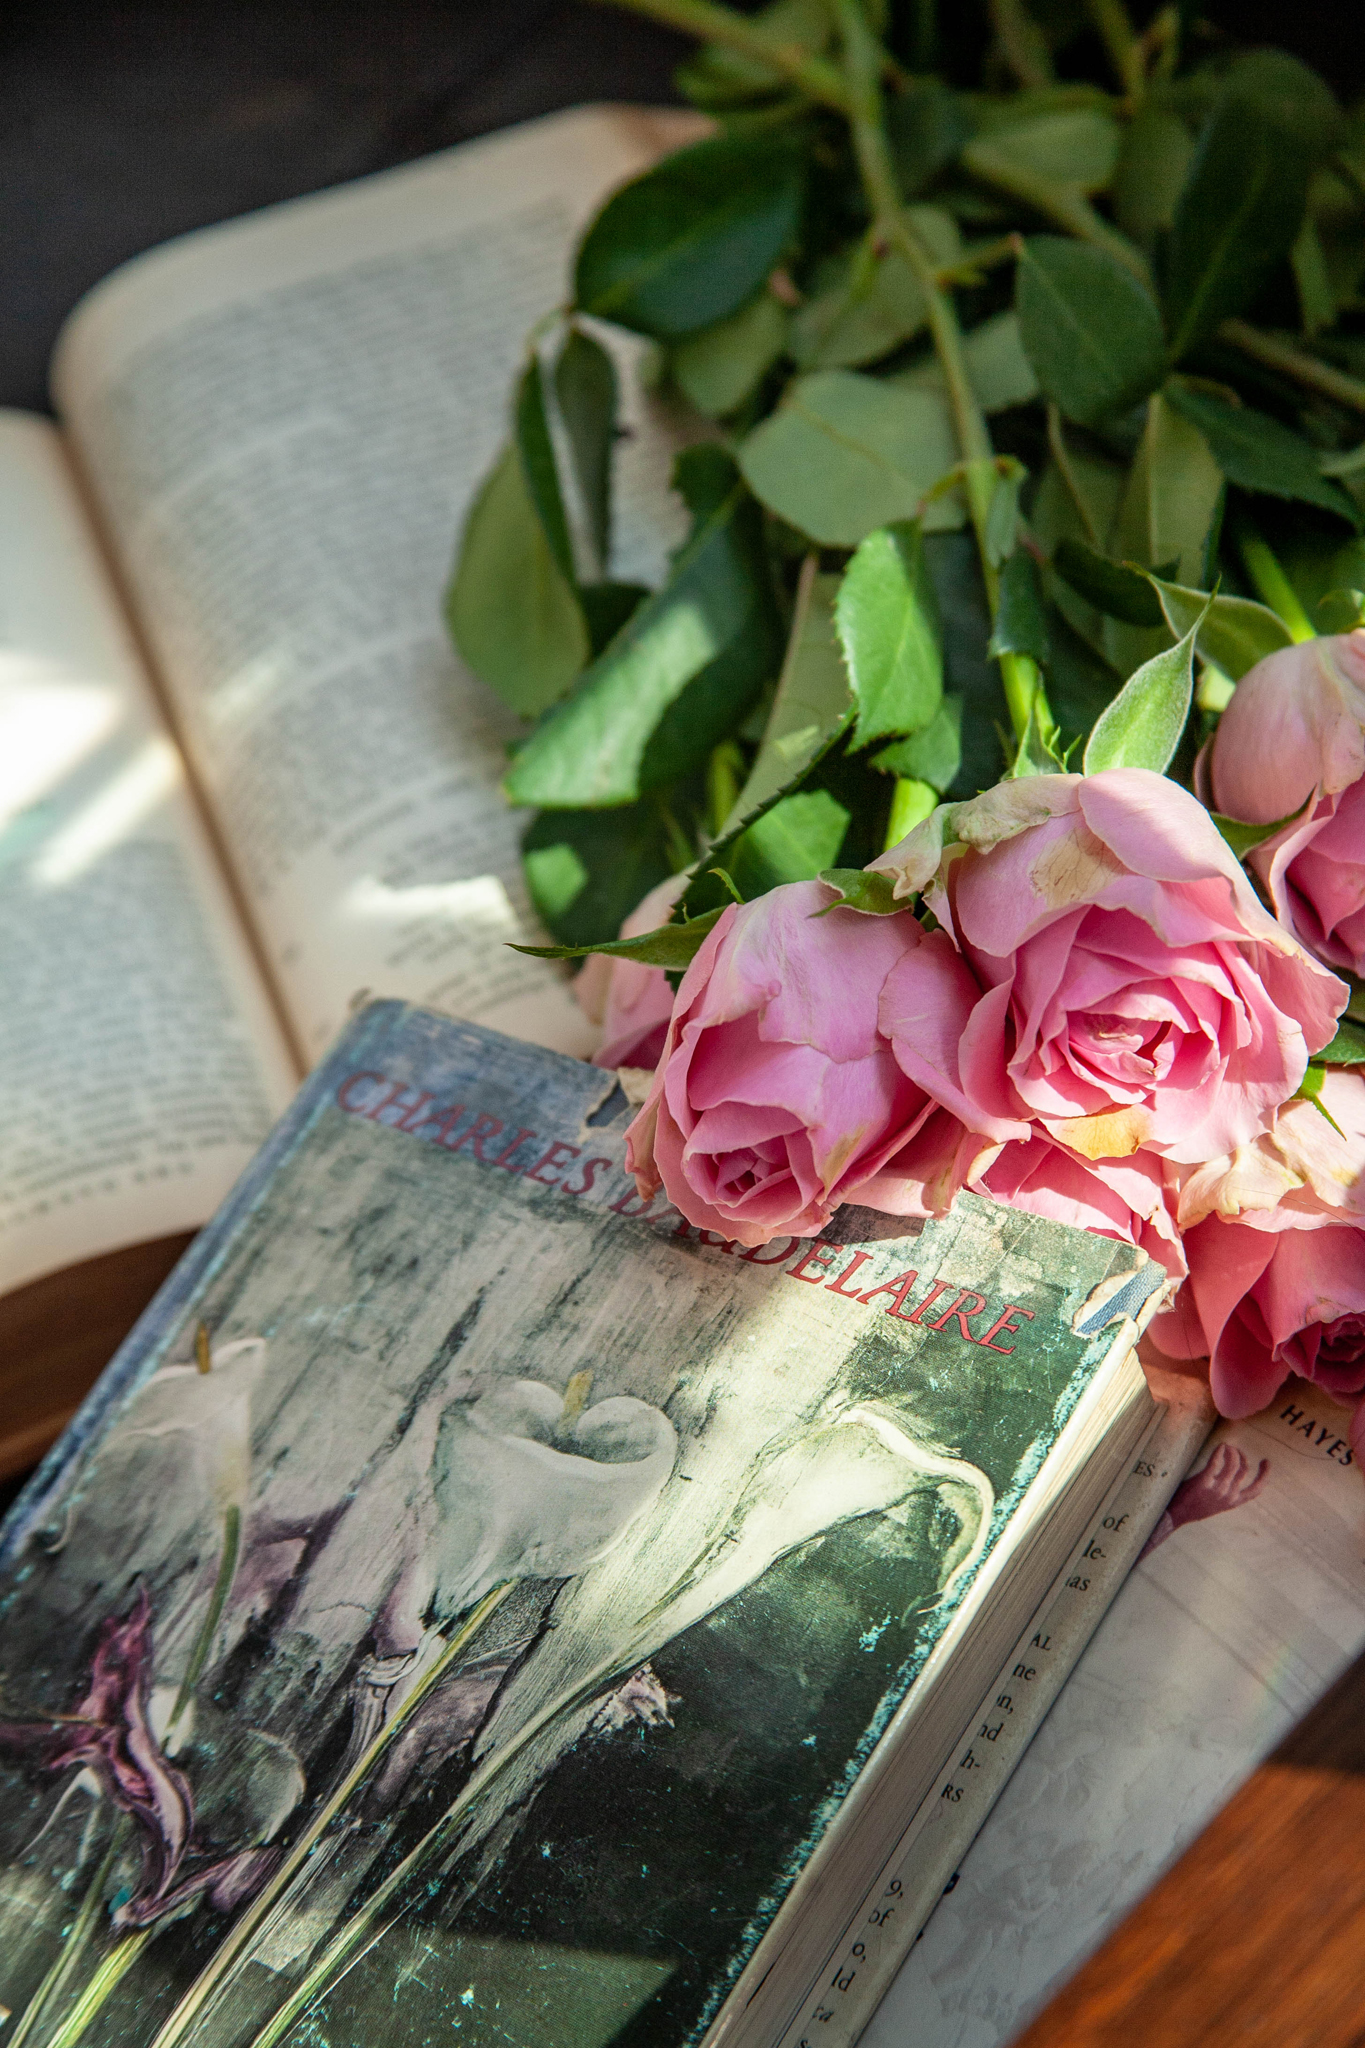 Roses and poetry